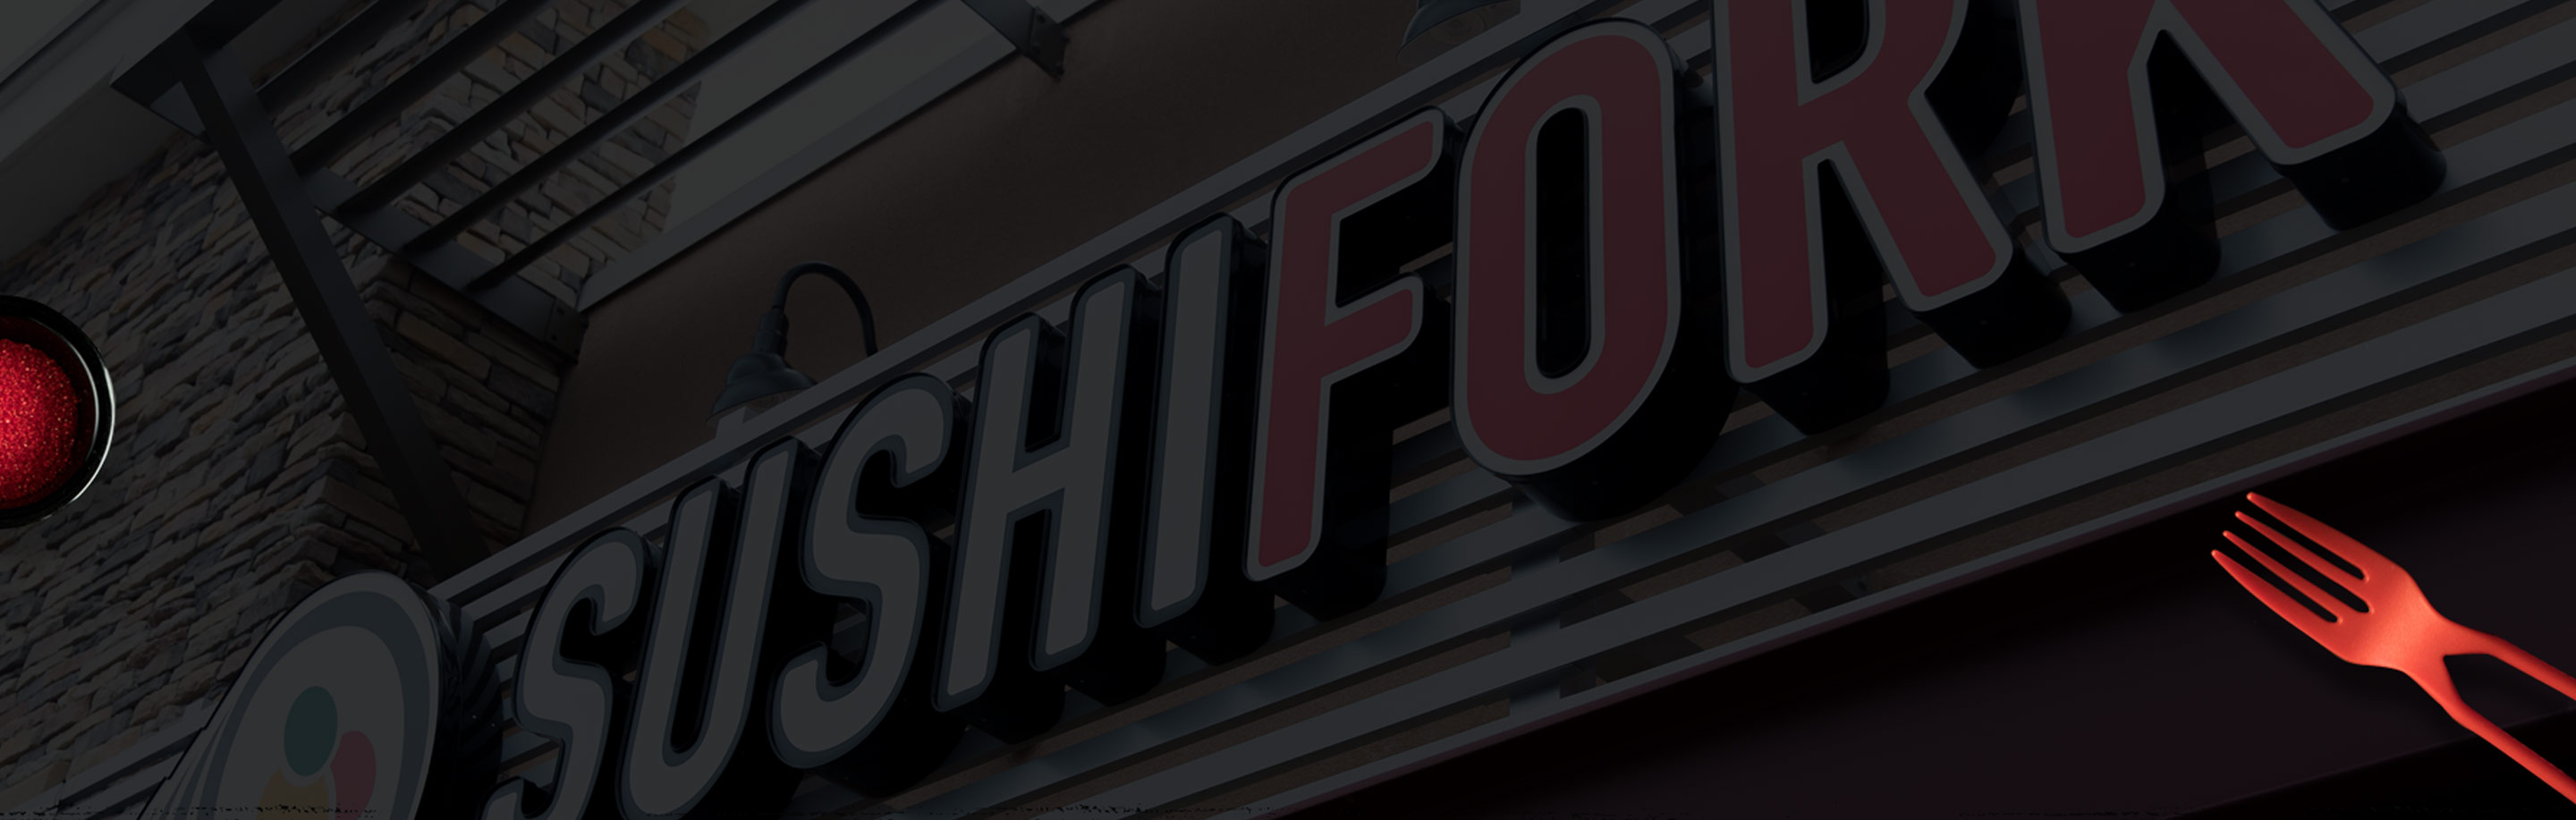 SushiFork Franchise - Tulsa and Dallas Sushi